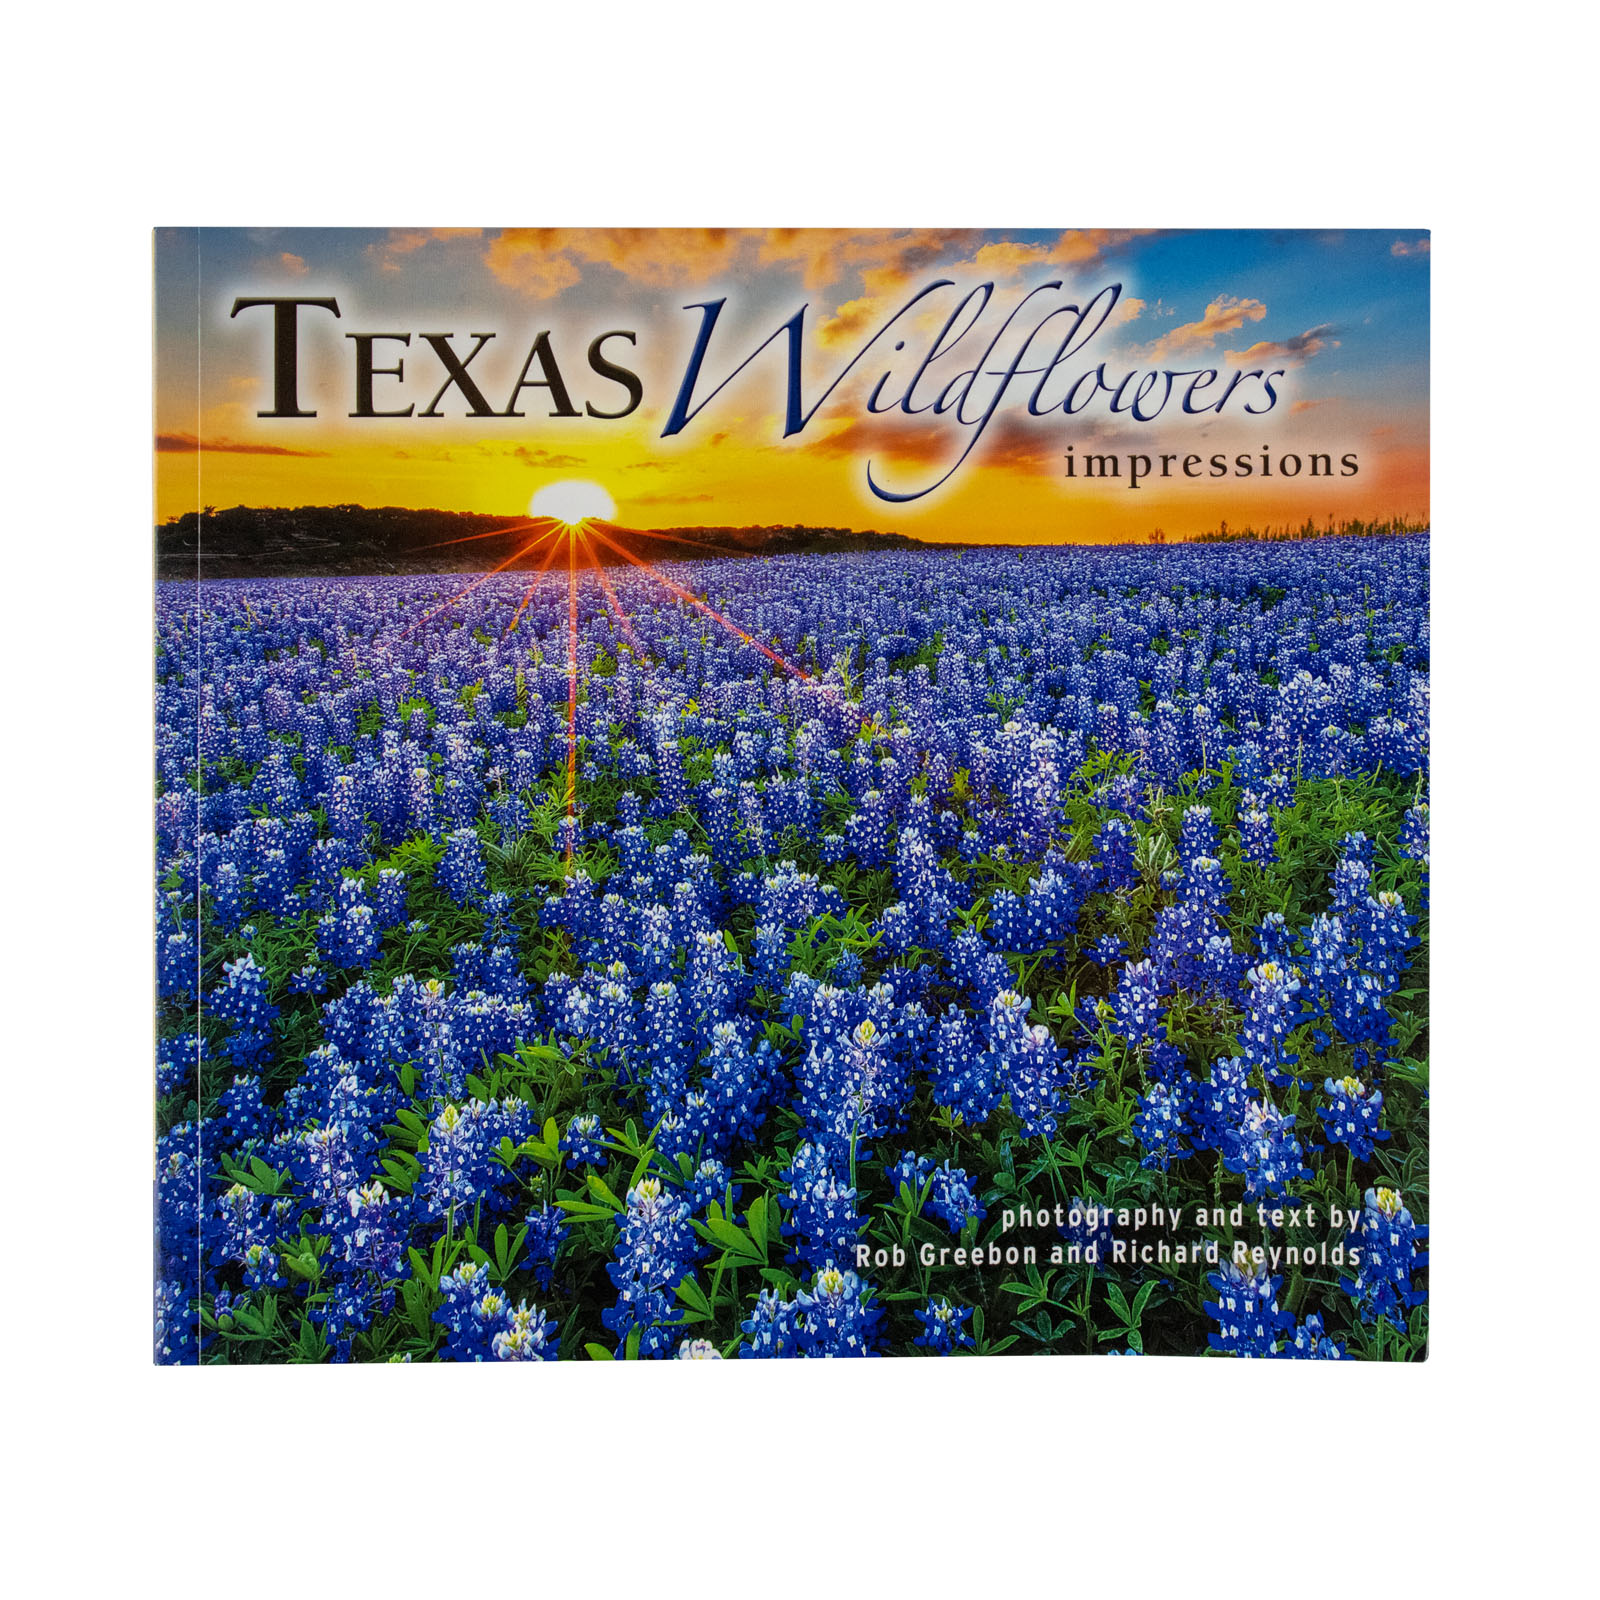 Texas Wildflower Impressions